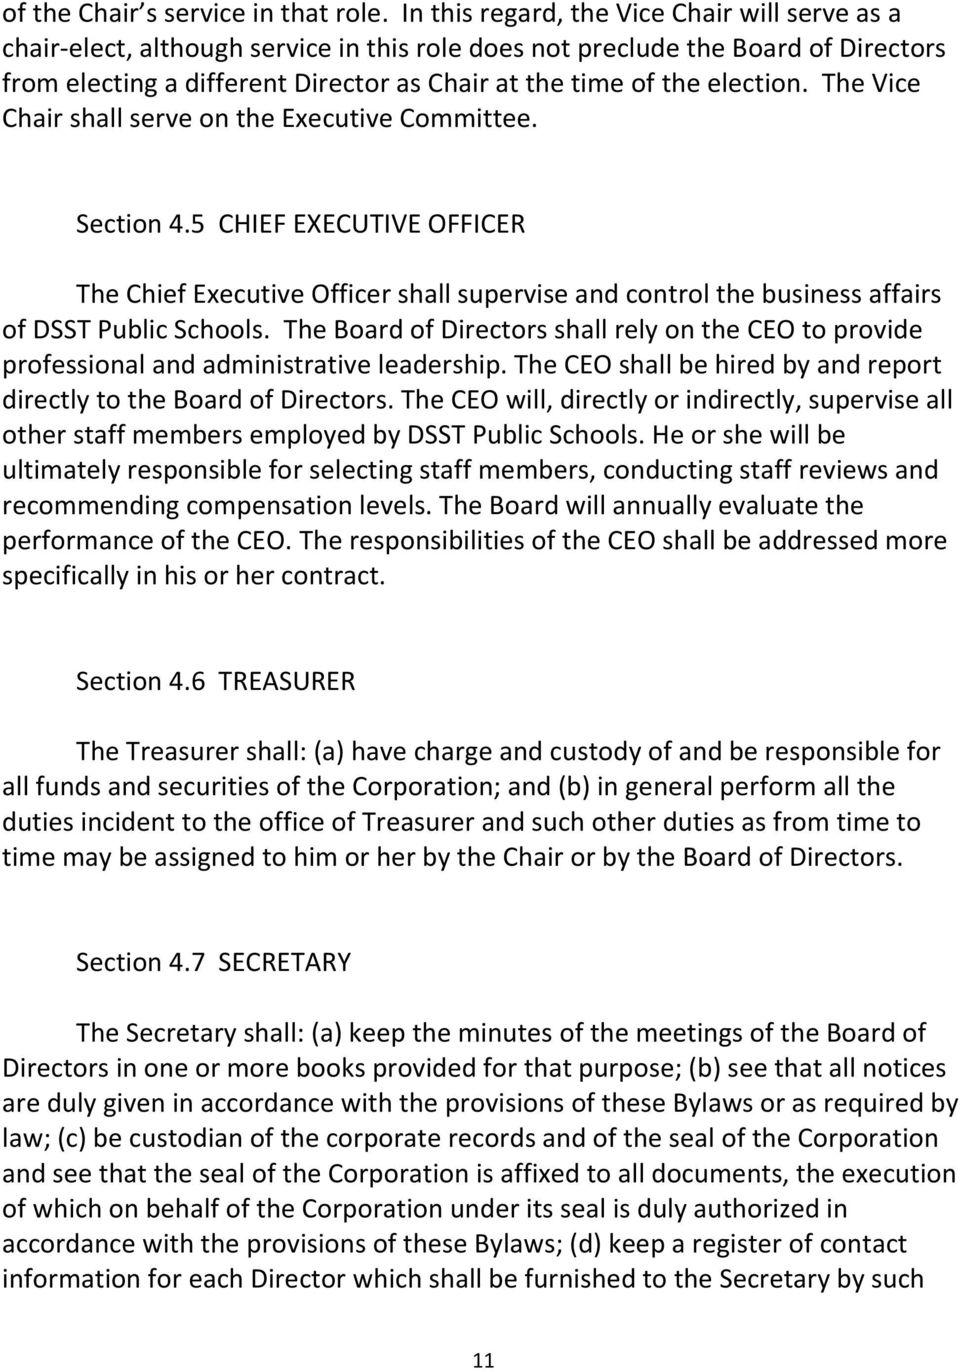 election. The Vice Chair shall serve on the Executive Committee. Section 4.